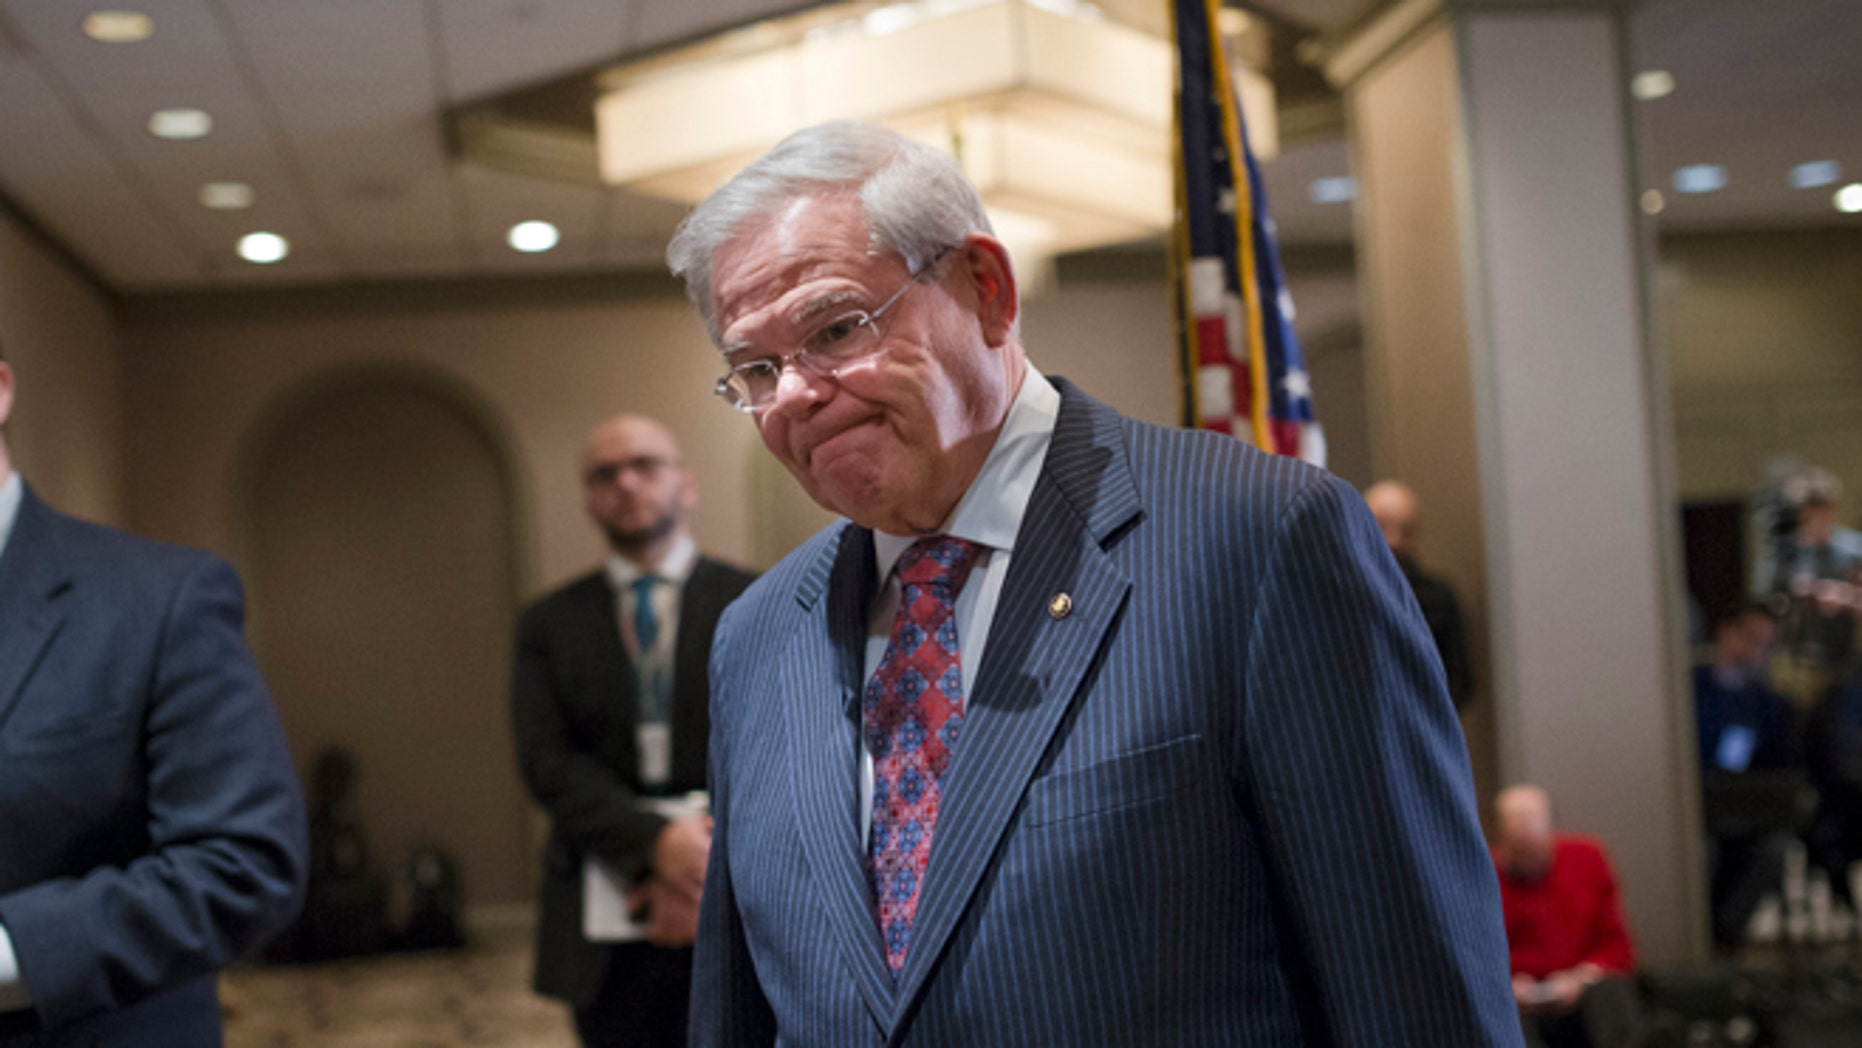 Sen. Bob Menendez, D-N.J., leaves after news conference in Newark, N.J. on Friday, March 6, 2015. A person familiar with a federal investigation says the Justice Department is expected to bring criminal charges against the New Jersey Democrat in the coming weeks. Menendez says that he has always behaved appropriately in office. (AP Photo/John Minchillo)